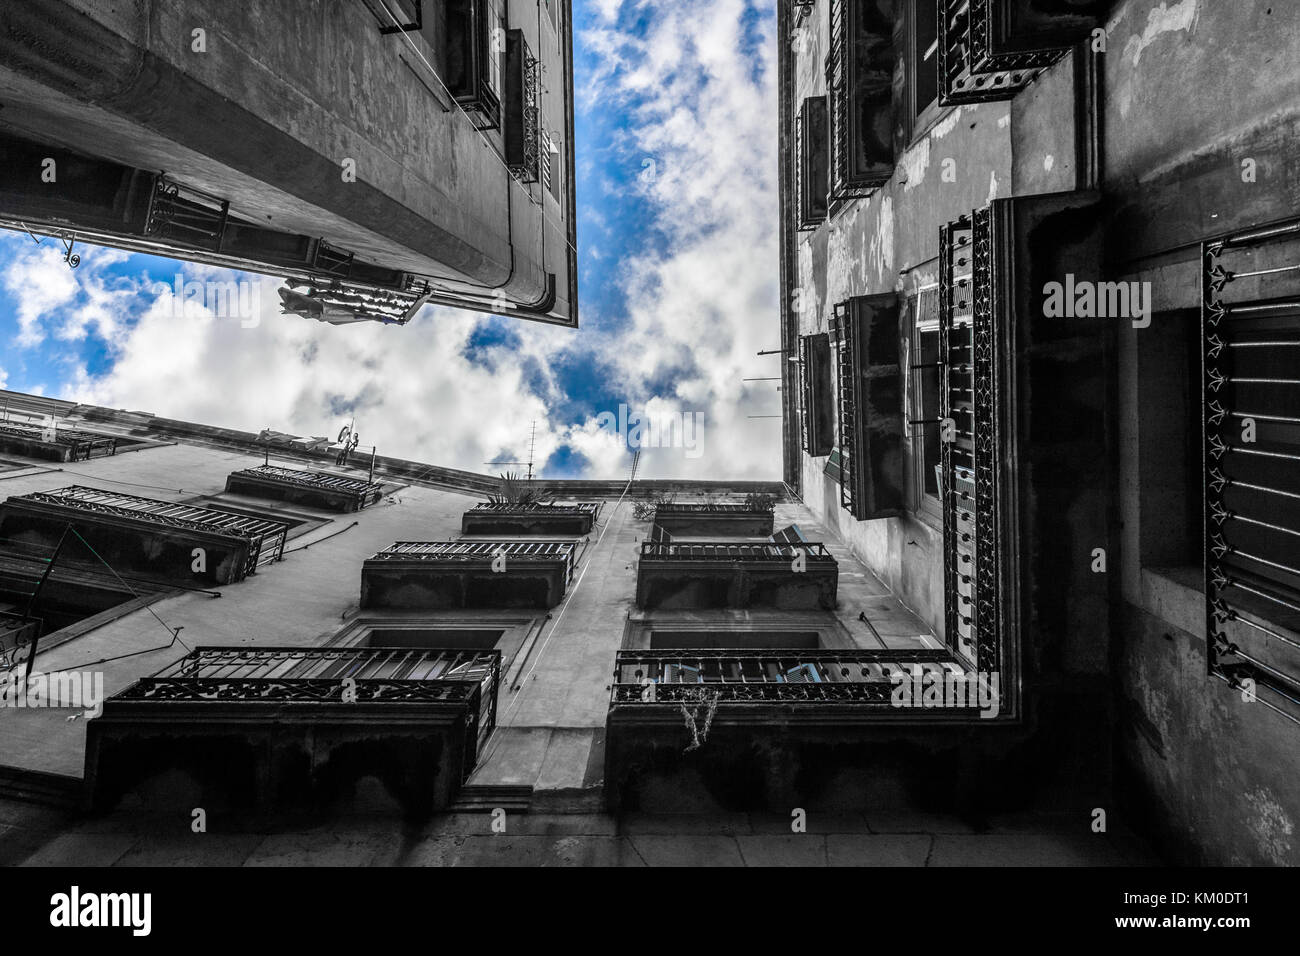 blue sky between buildings in Barcelona, Spain. - Stock Image